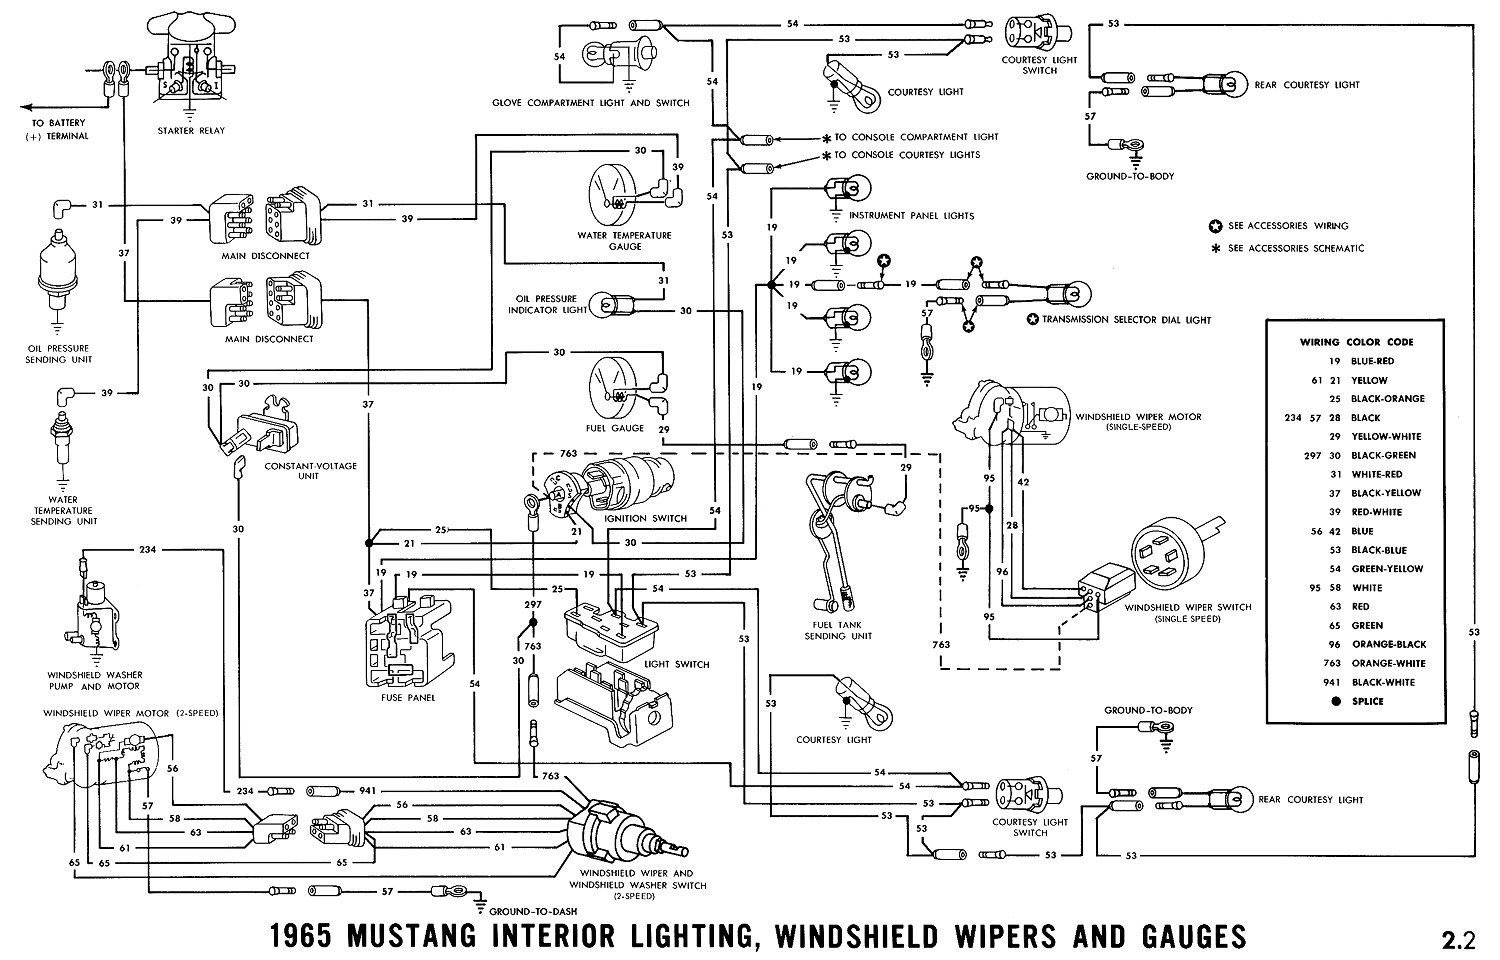 Interior Wiring Diagram Wire Center 2001 Mustang Windows 1965 Diagrams Average Joe Restoration Rh Averagejoerestoration Com For A 1970 Cuda Buick